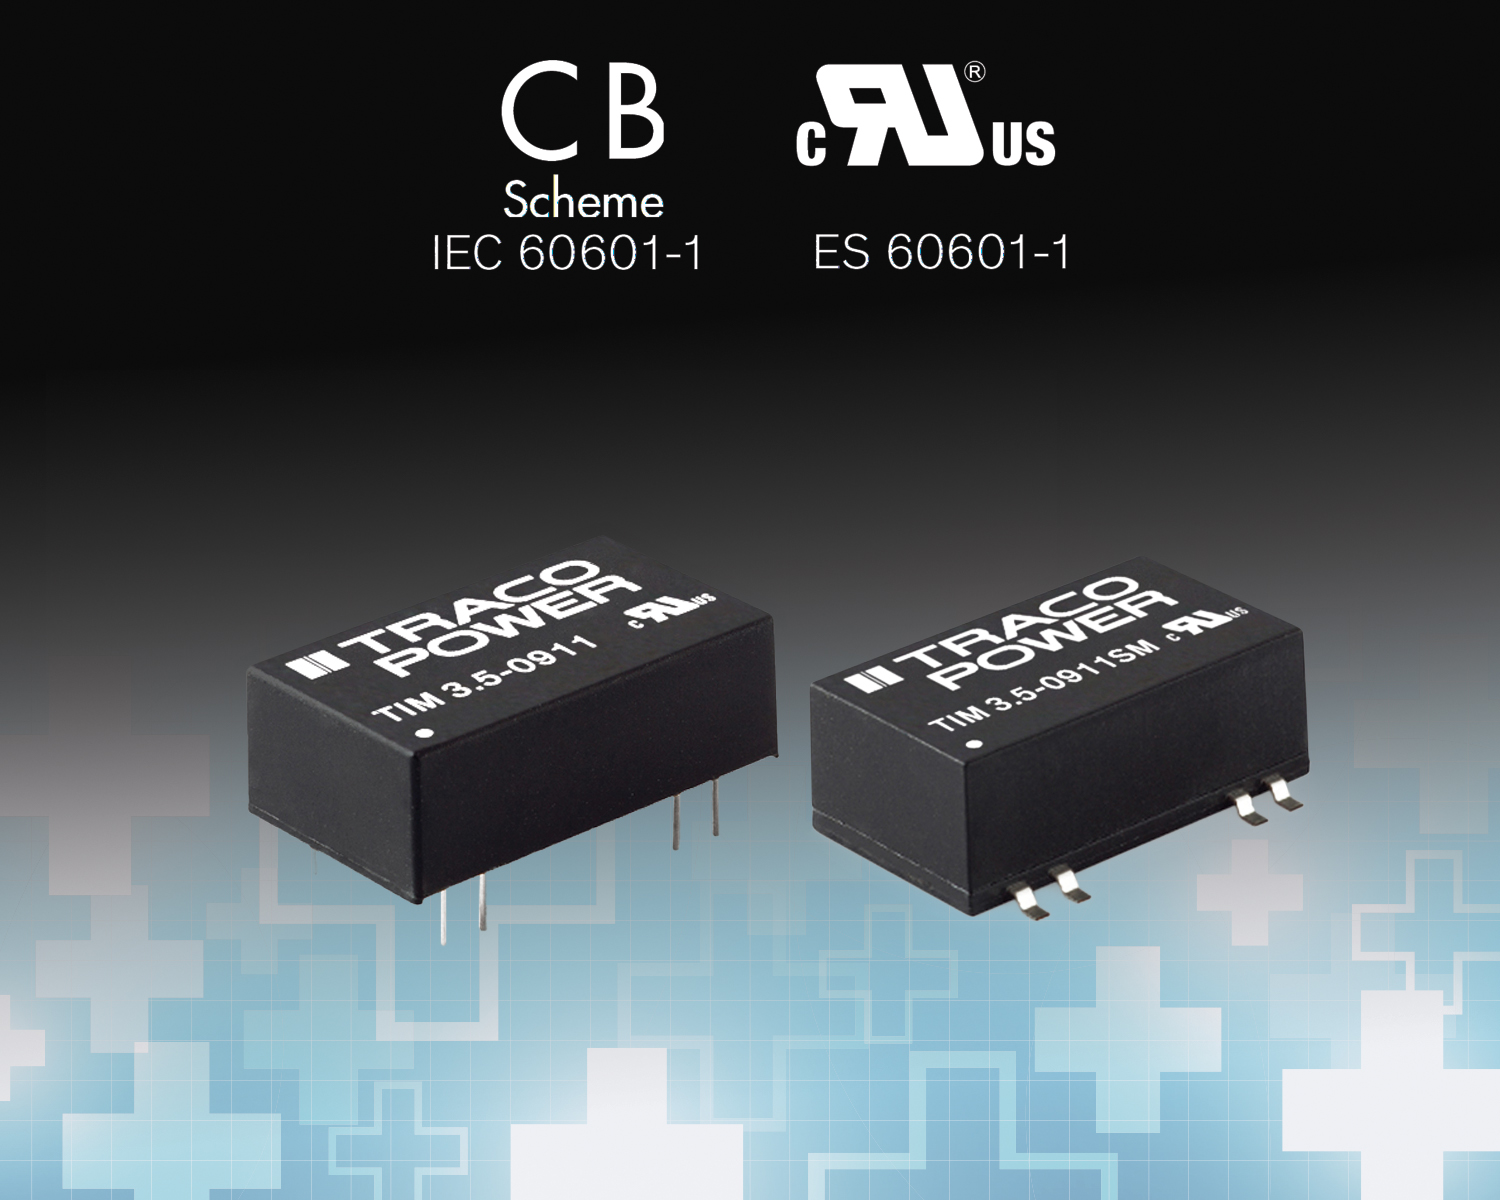 3.5 Watt Medical DC-DC Converters Feature Compact DIP or SMD Package